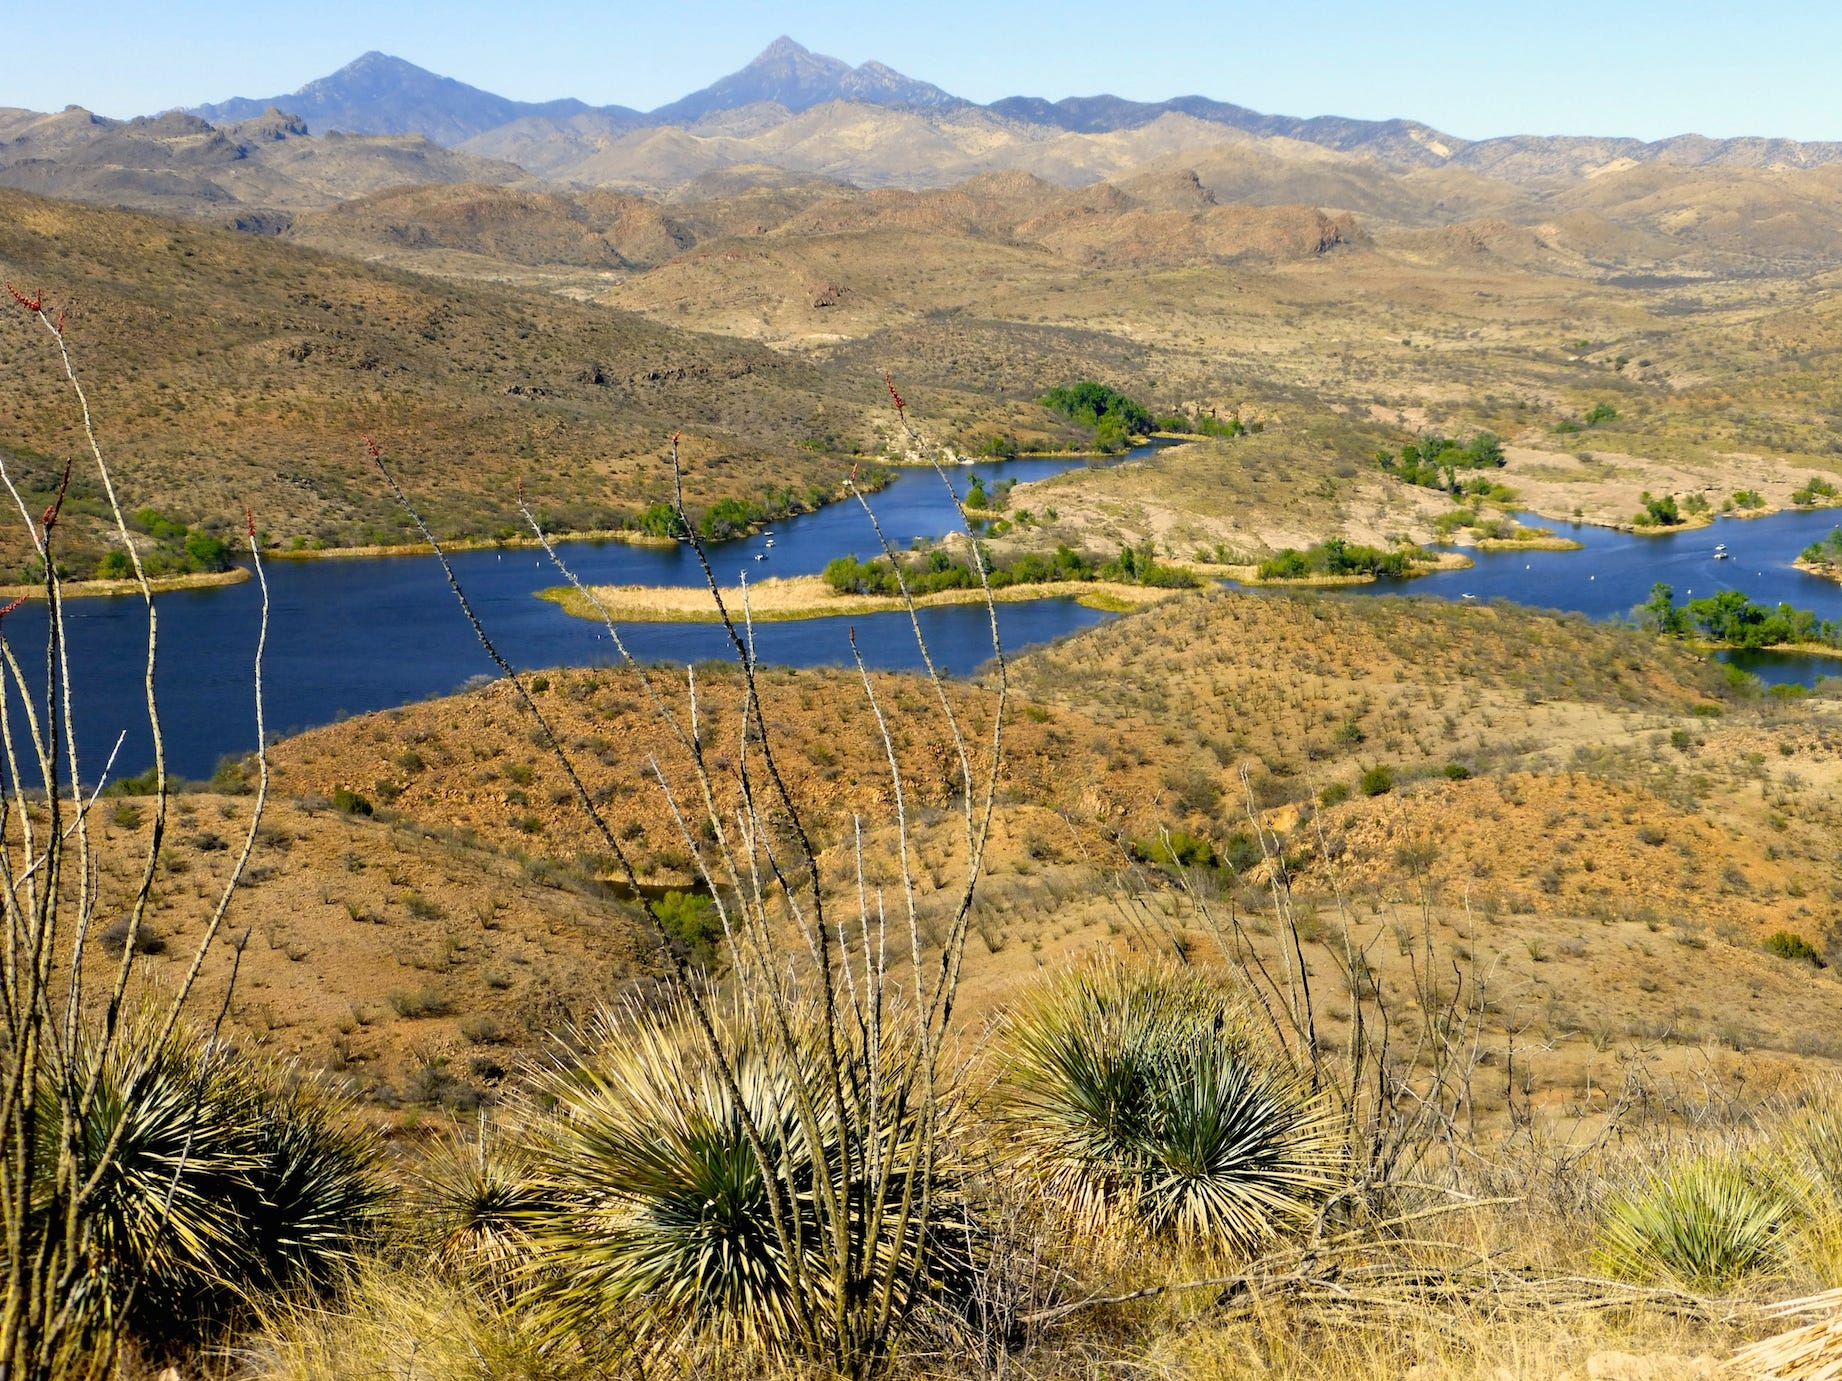 Patagonia Lake State Park can be found hidden among the rolling hills south of the town of Patagonia.